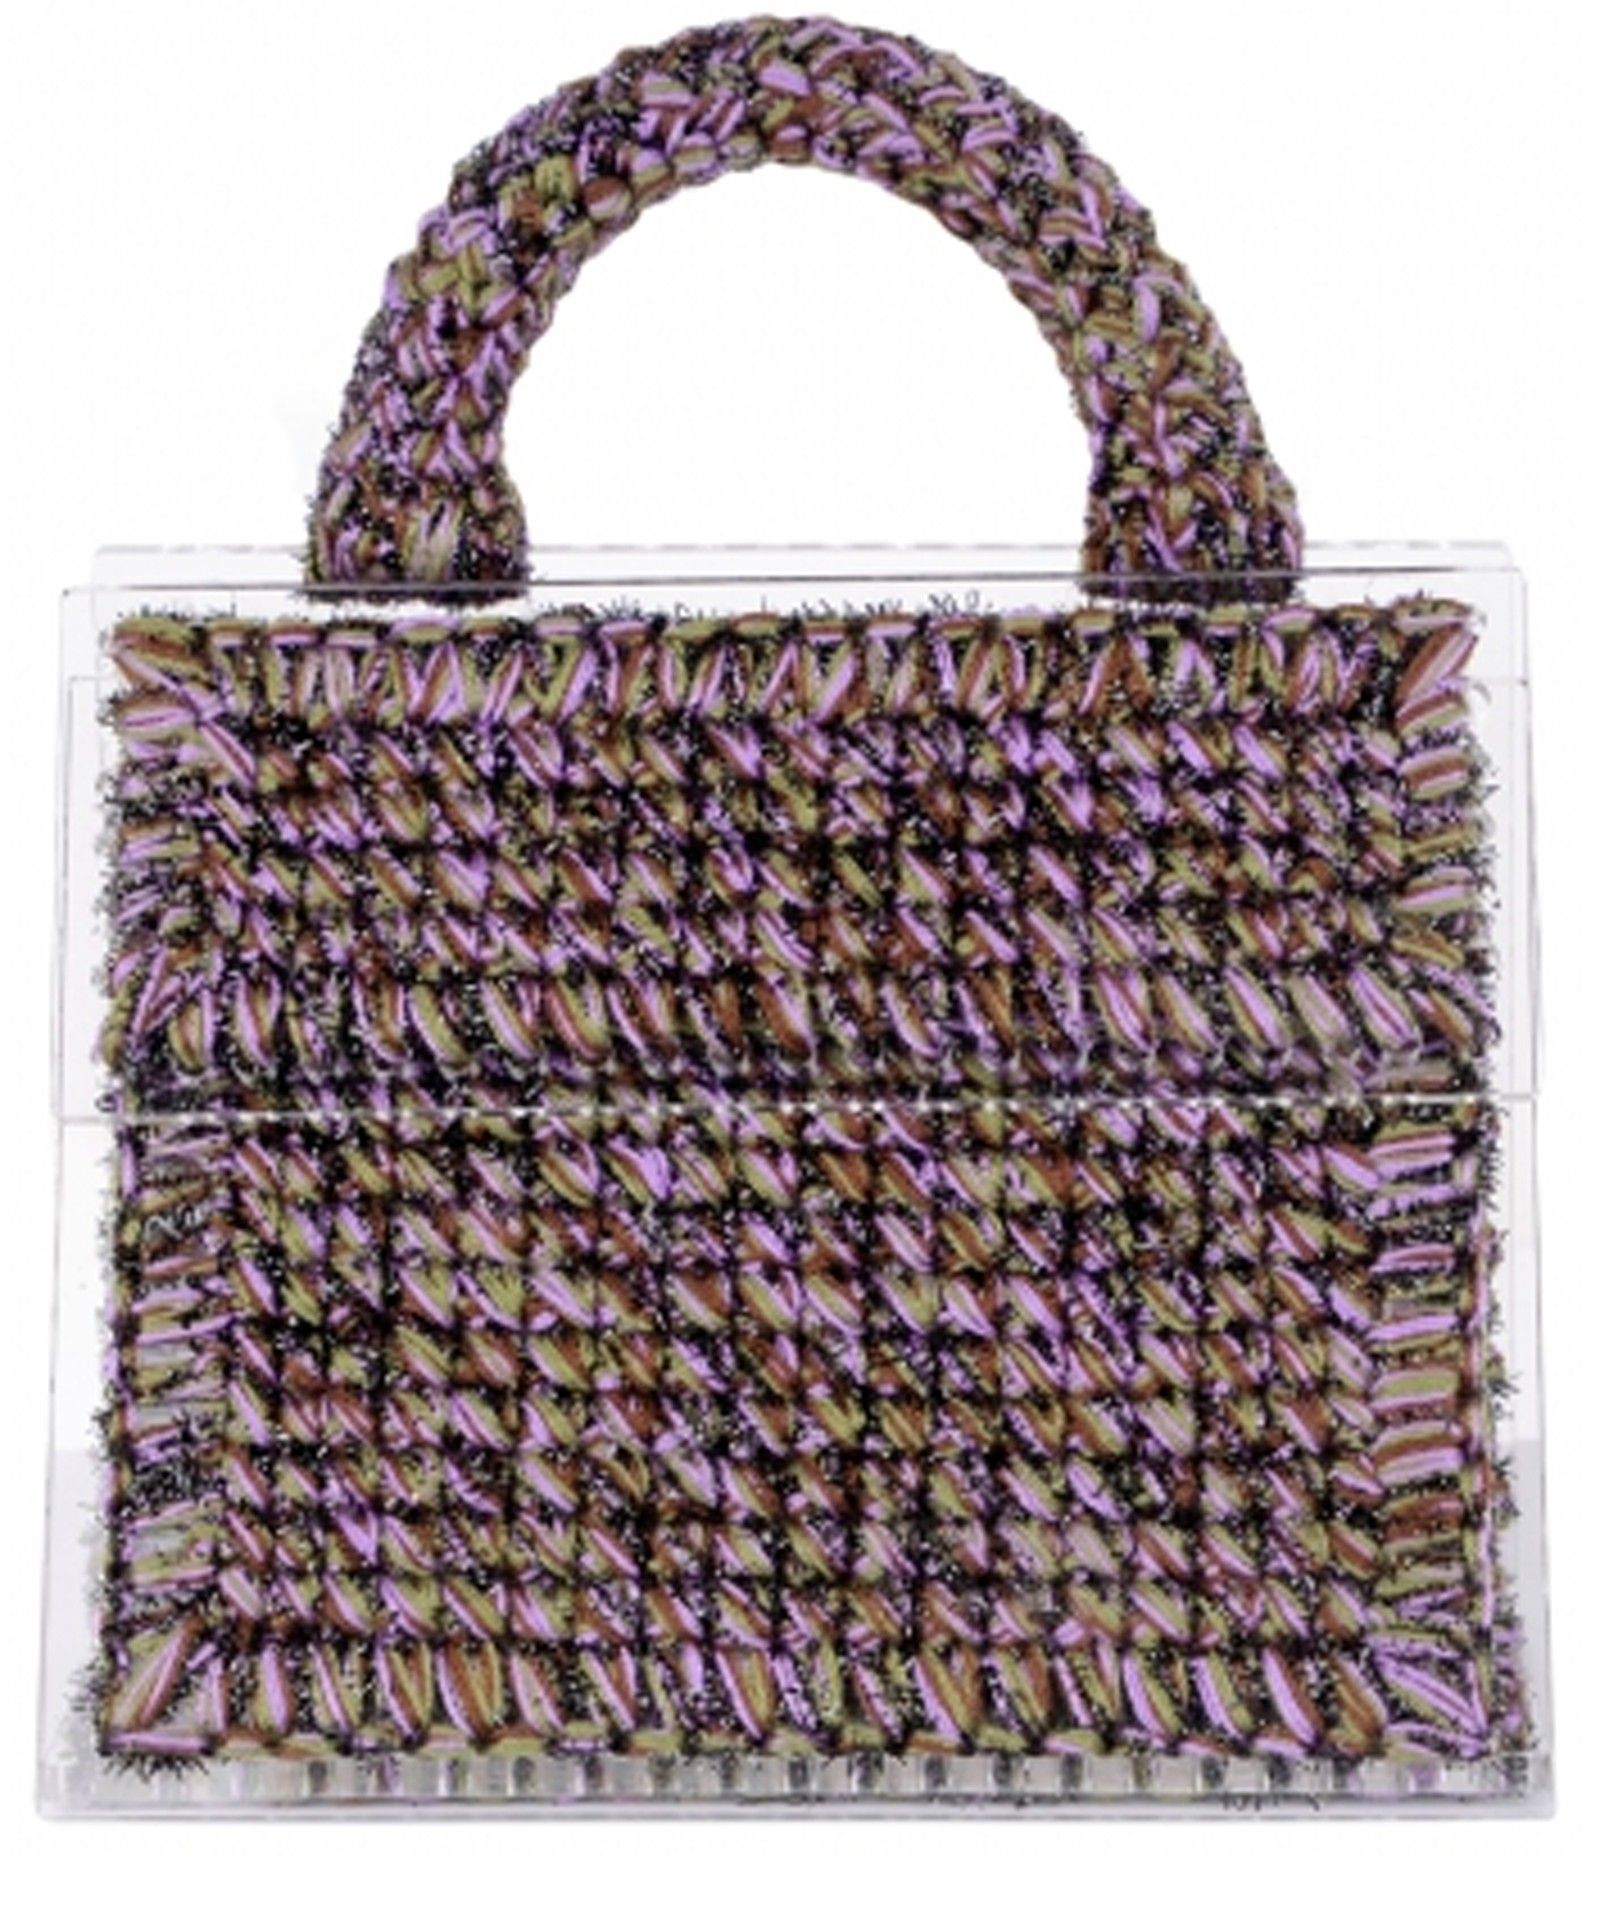 Copacabana large woven handbag - Black 0711 hTdrA